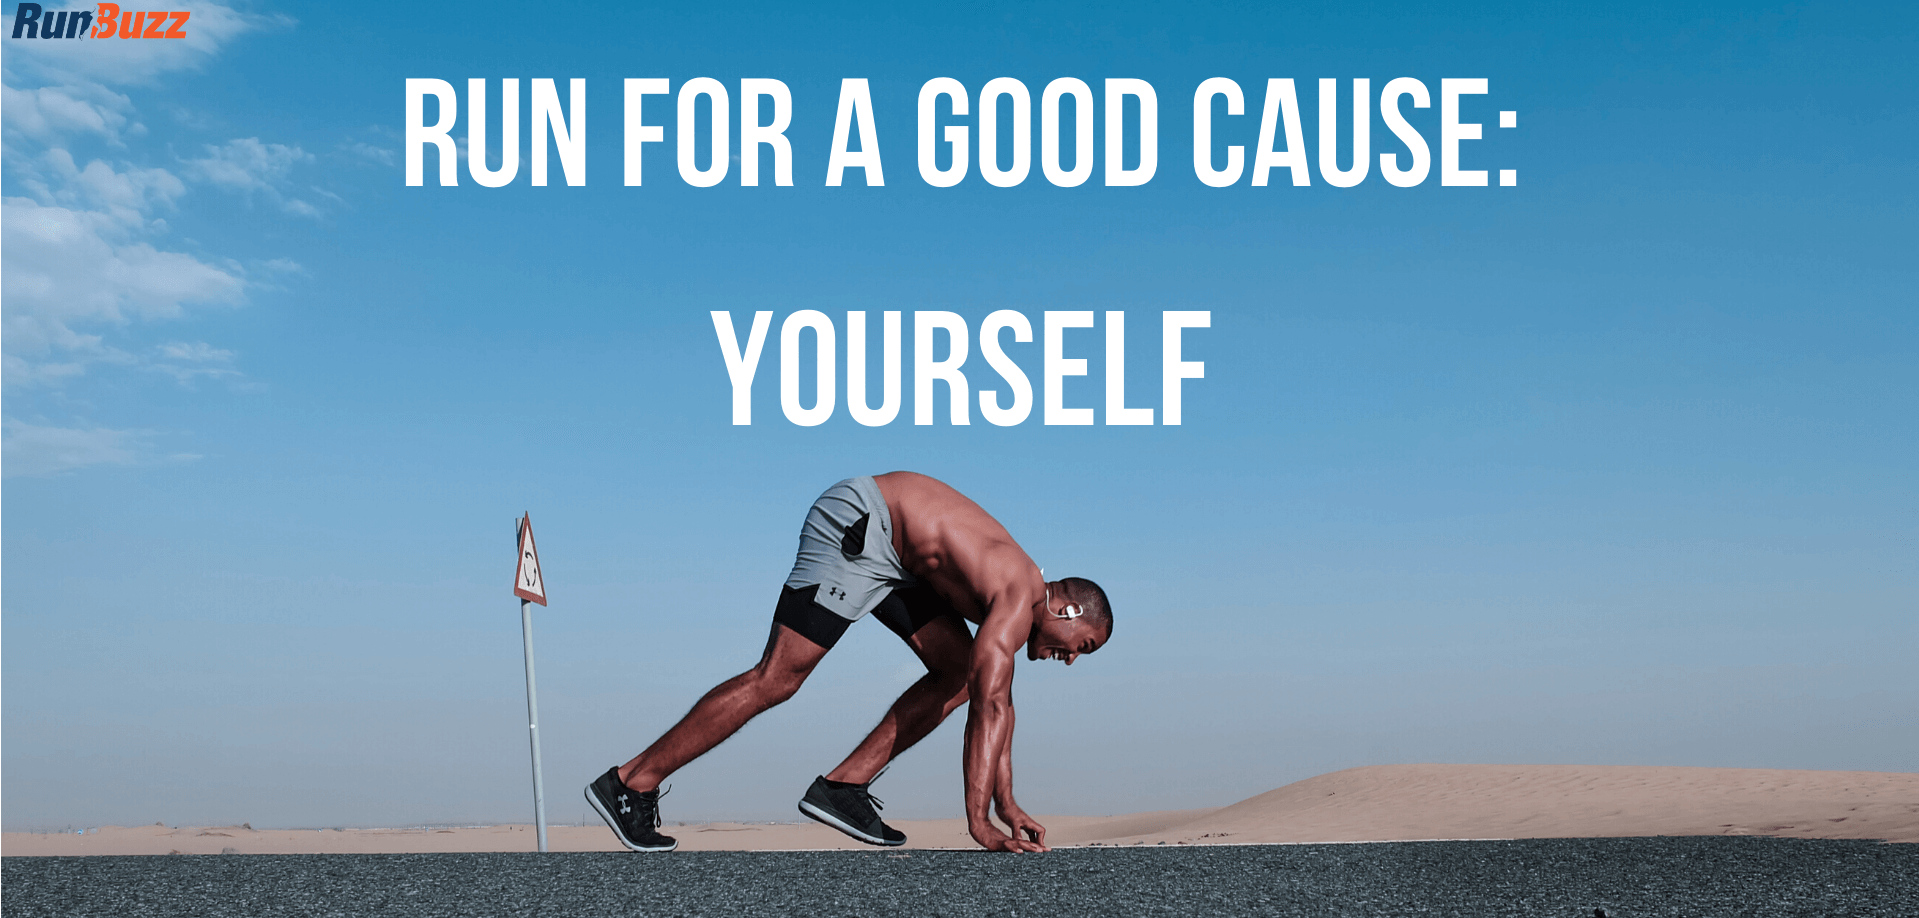 Run-for-a-good-cause_-Yourself-